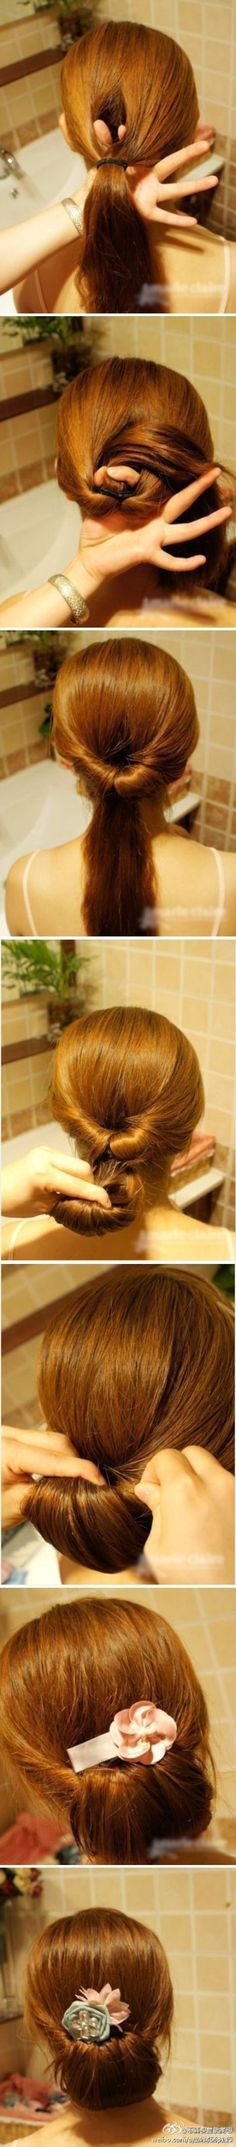 Popular Hair & Beauty from Pinterest: 23 Feb - IKnowHair.Com